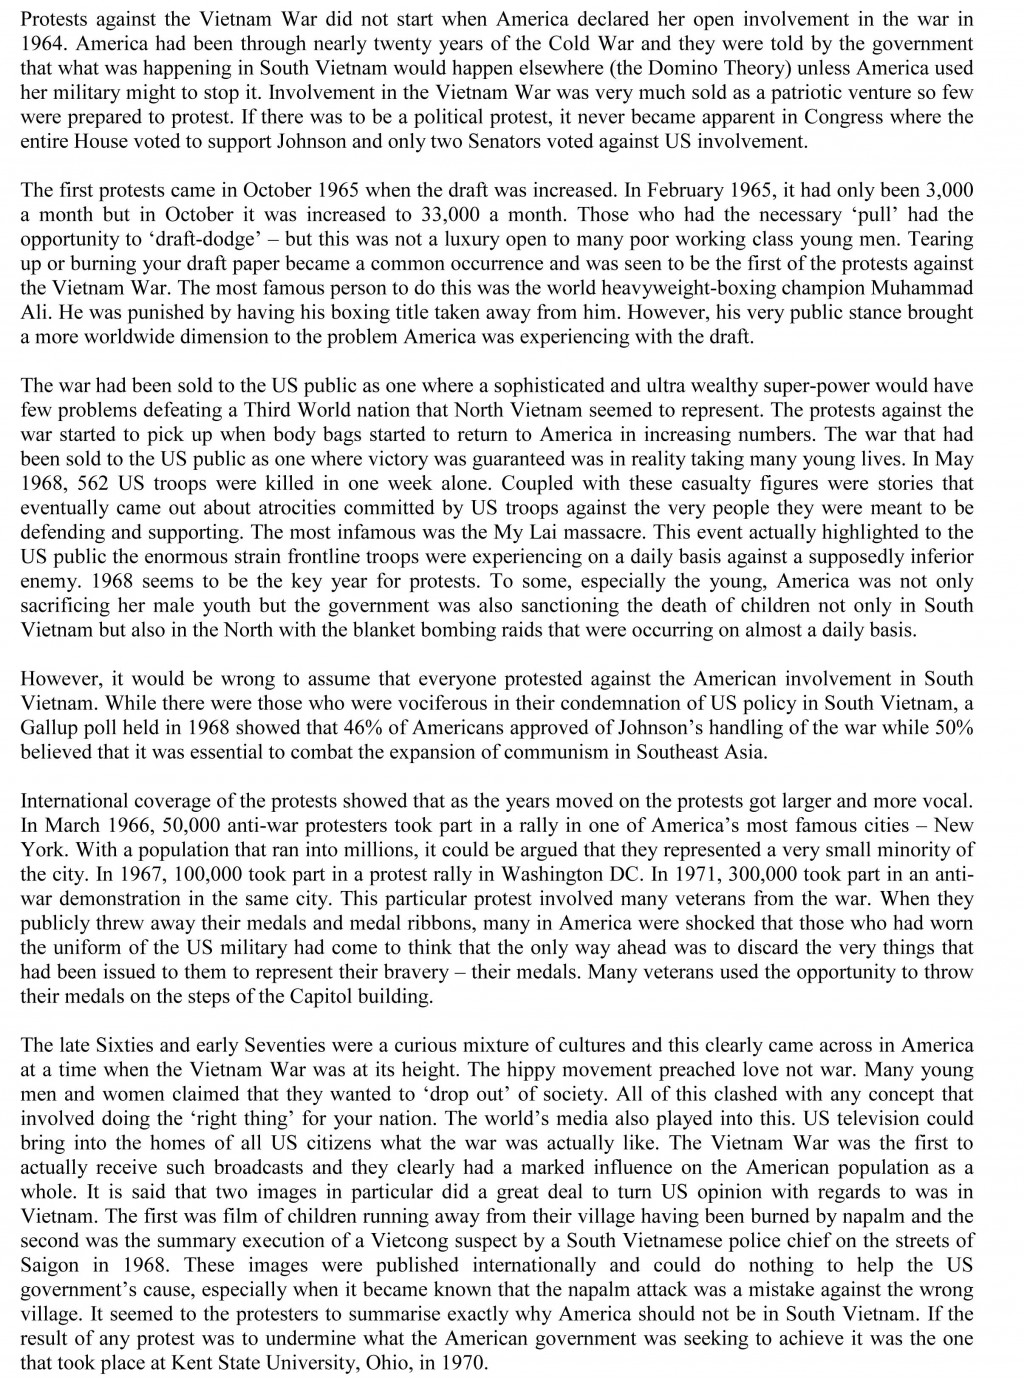 012 Vietnam War Essay Expository Cause And Effect Surprising Examples Topics Large